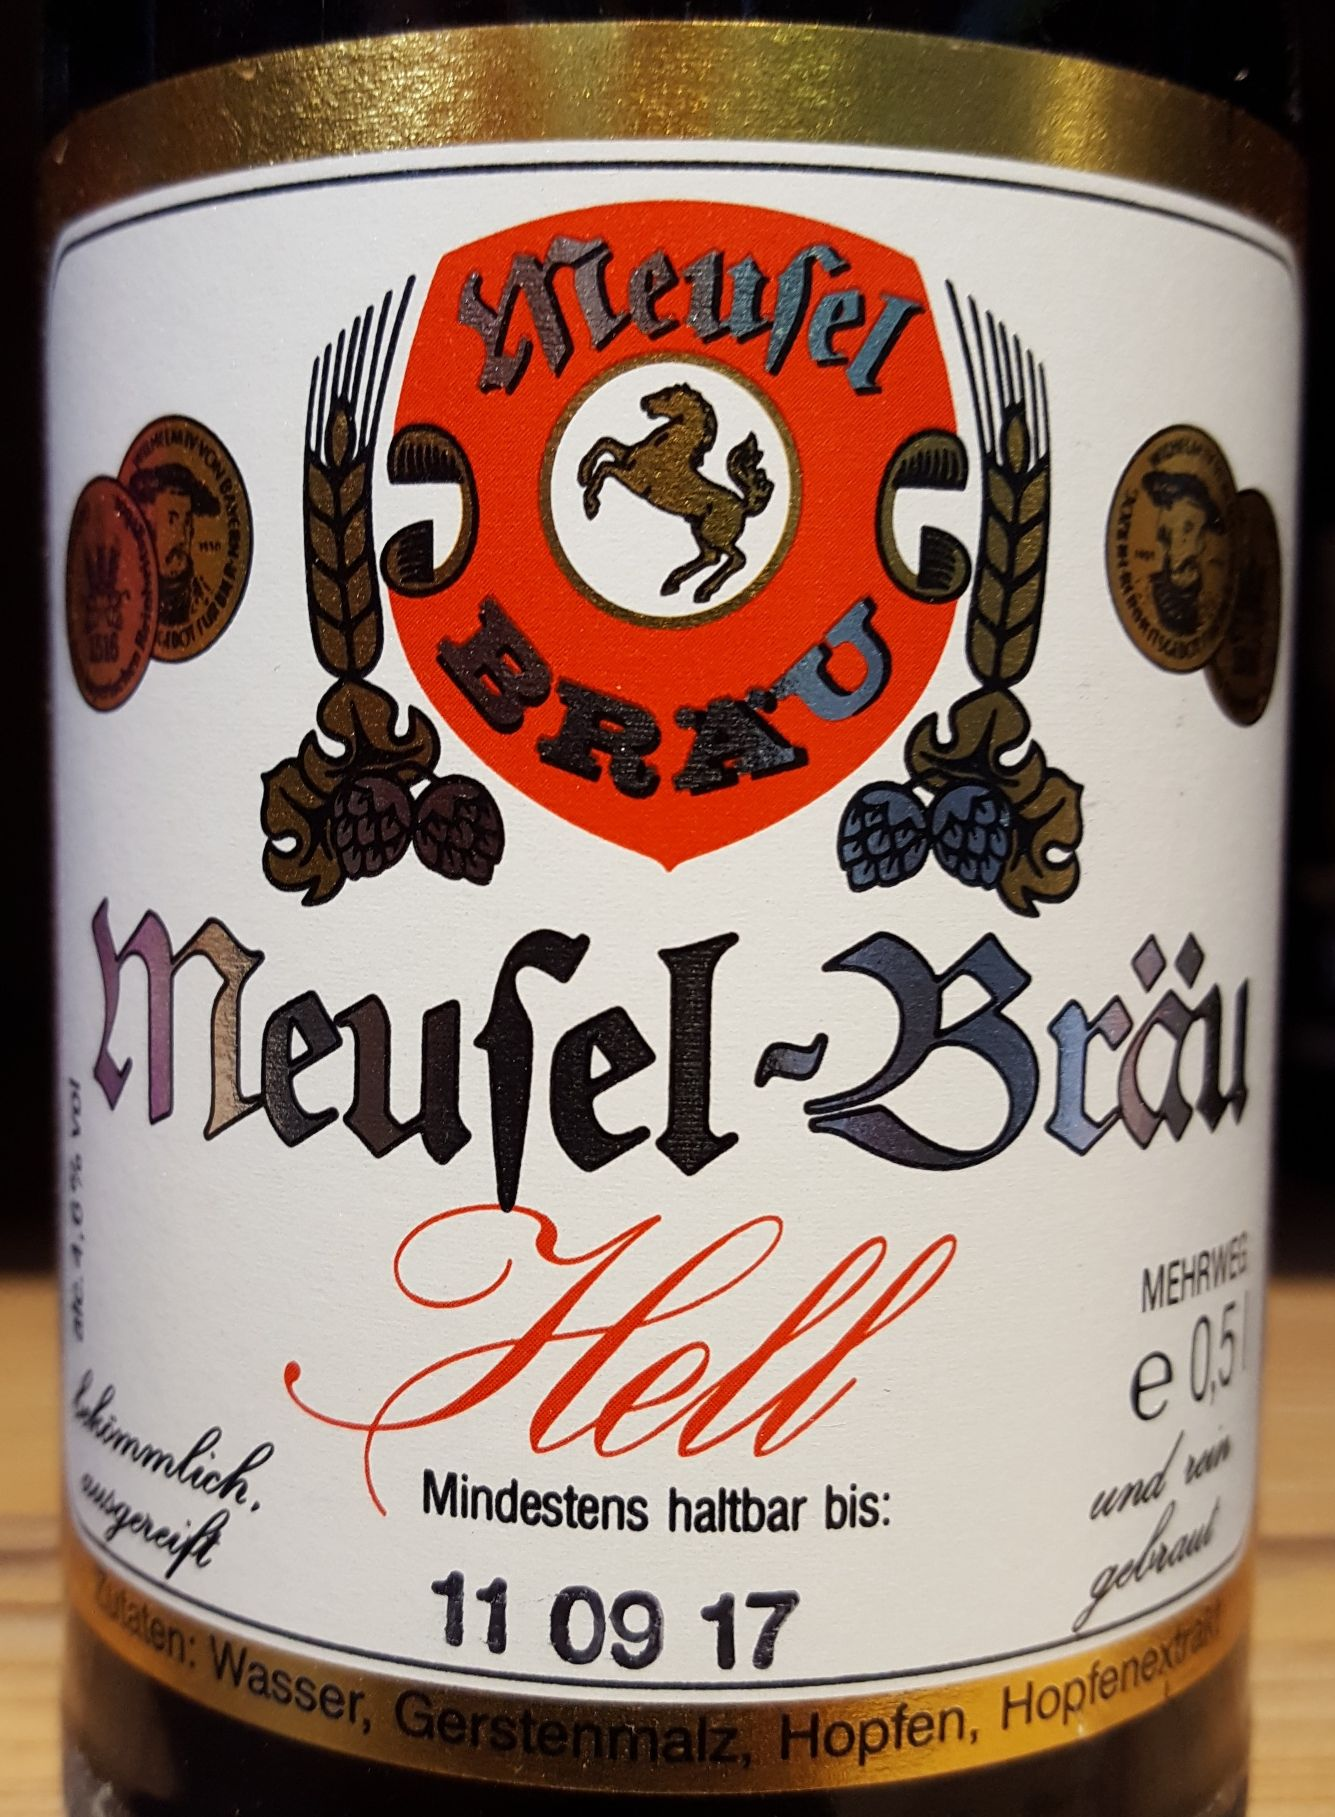 Meusel br u hell craft beer online shop by craftbeer dealer for Craft beer online shop